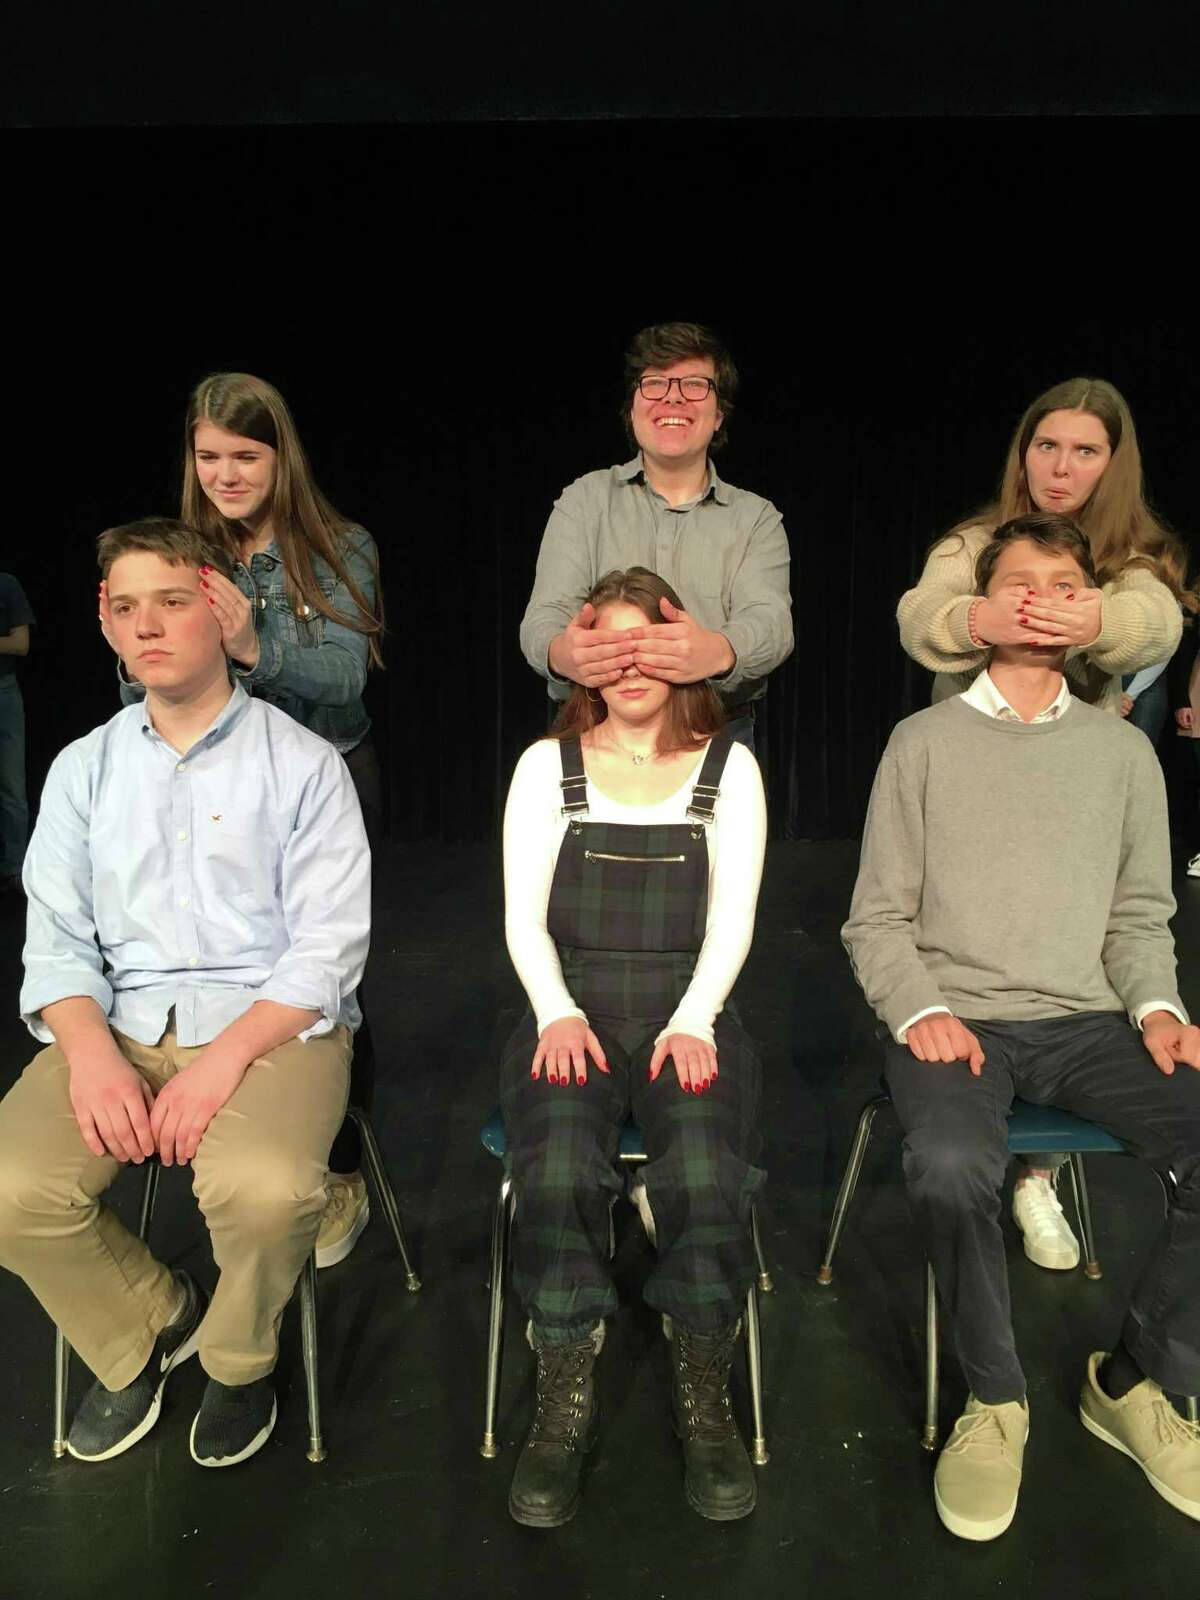 Sarah Bates, Mickey Wilcox, Devin Moran, Liv Becraft, Mairead Kehoe, Anton Rushevich rehearse for Freeplay, presented Jan. 17-18, 2020, in Wilton High School's Little Theater.